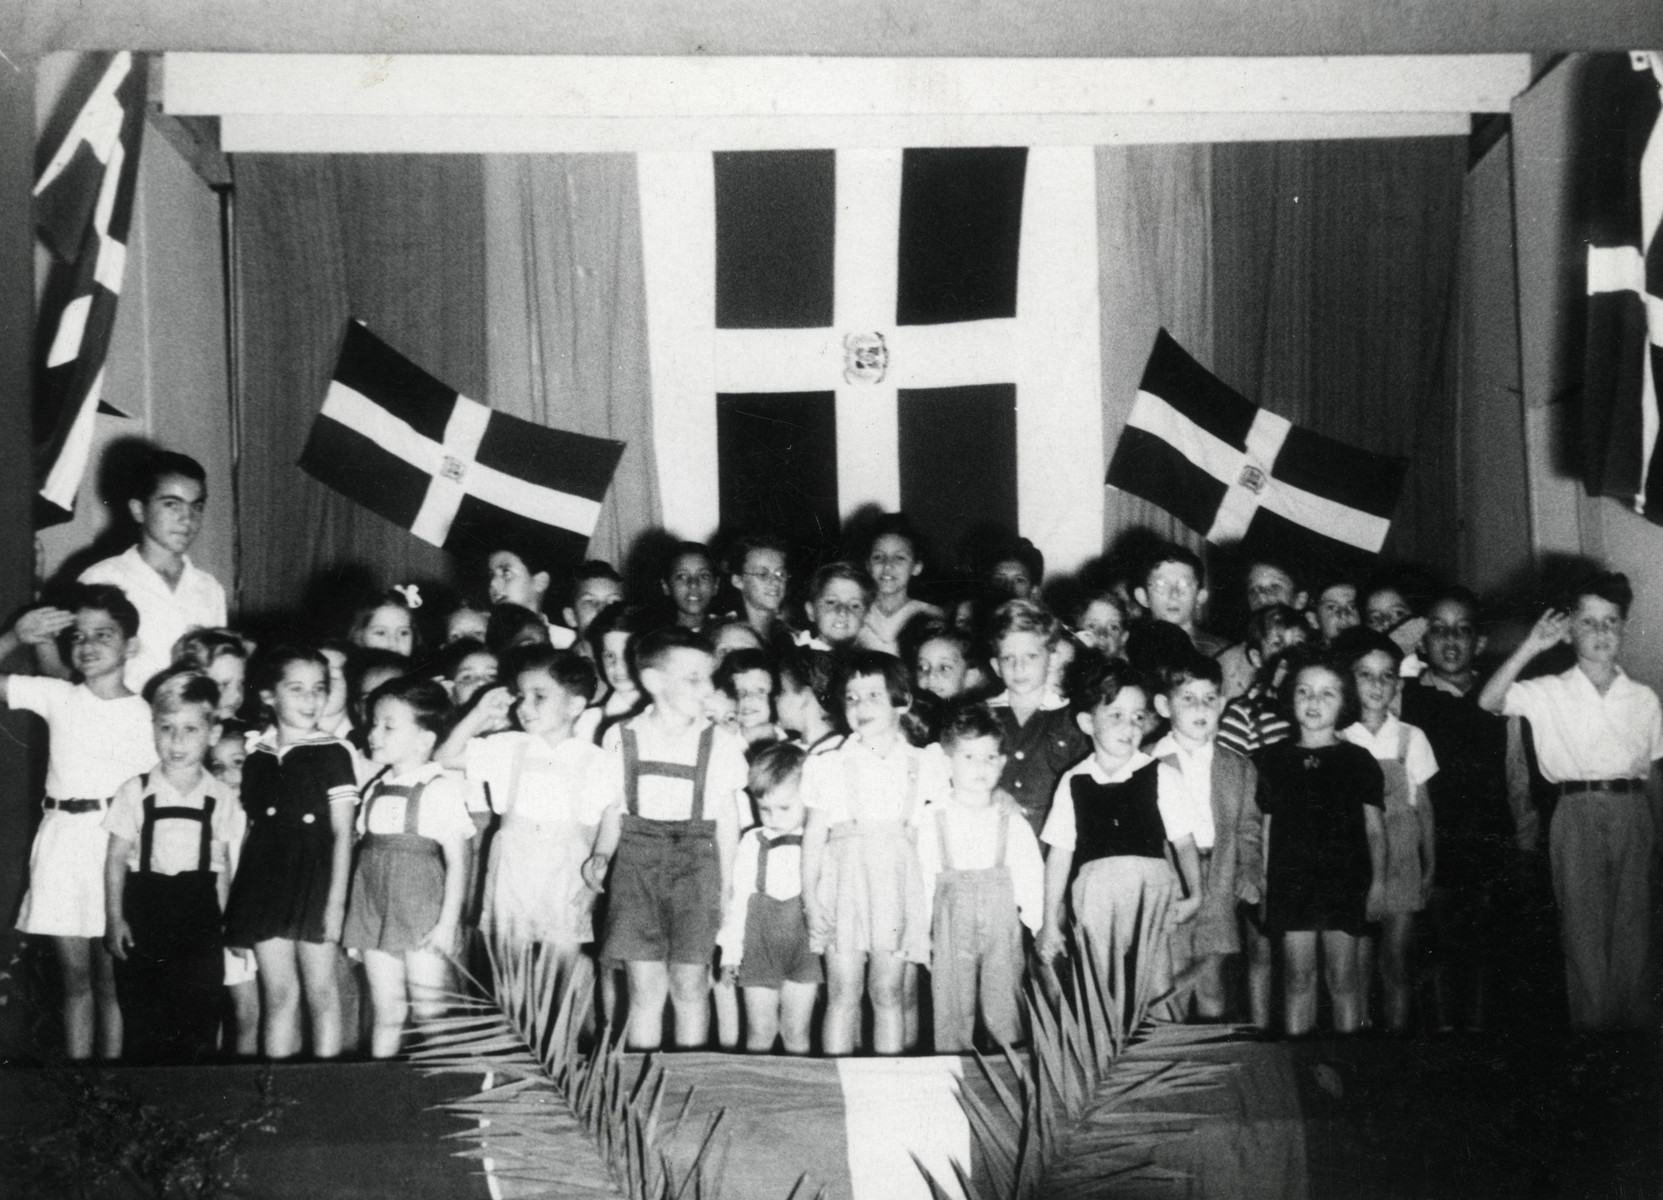 Young children stand in front of Dominican flags at a ceremony in their school in Sosua.    Teenager Marcel Salomon stands behind them on the left.